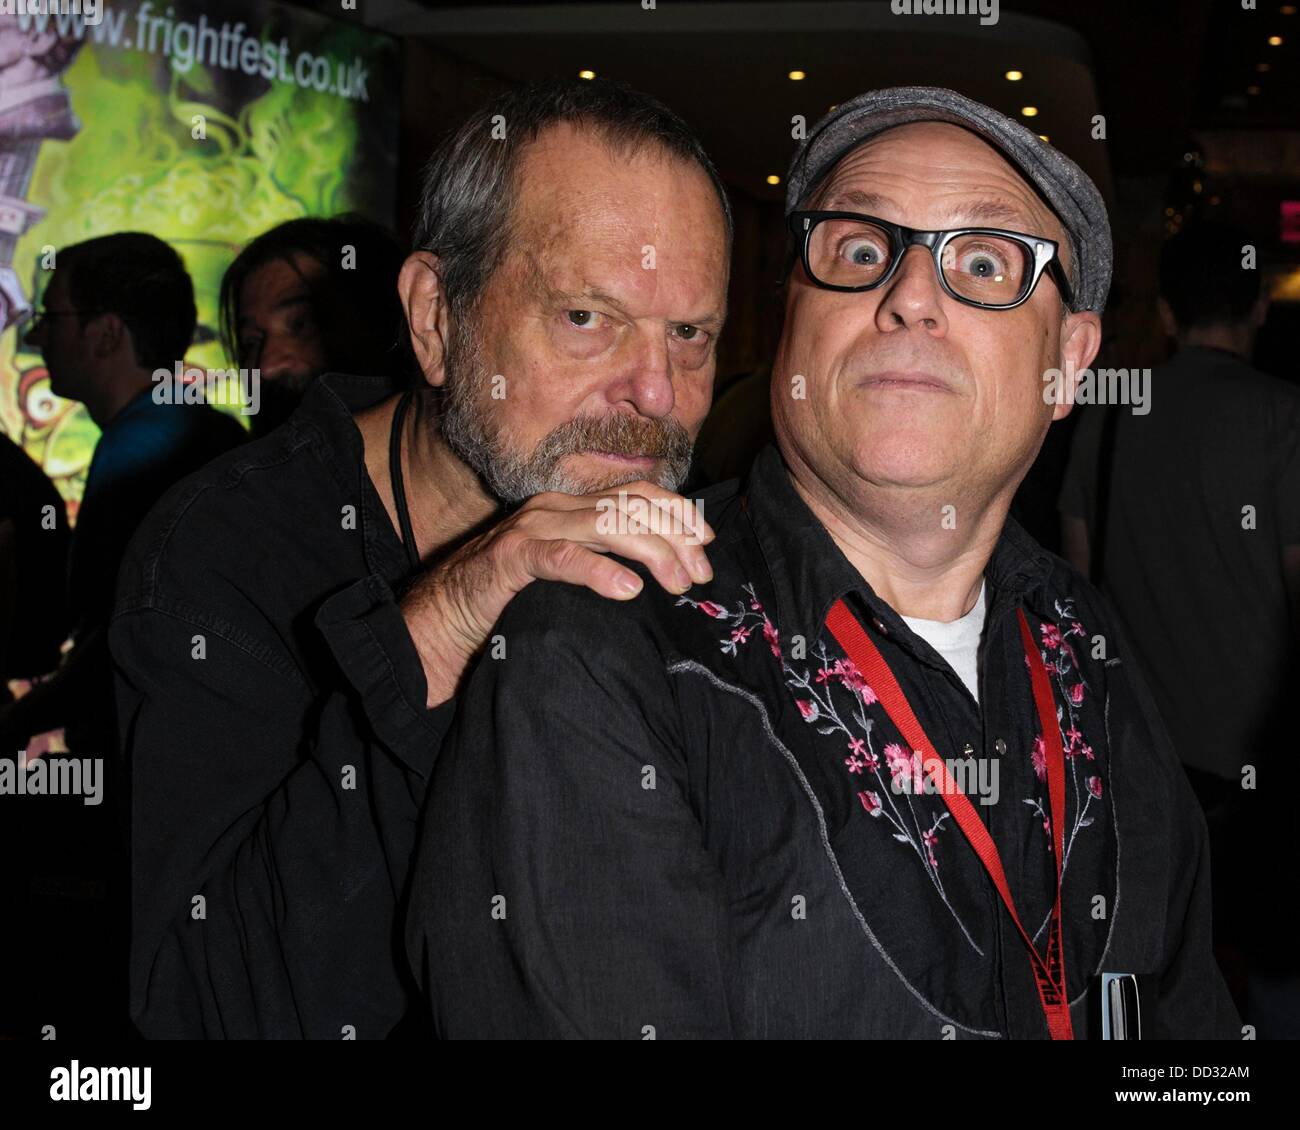 Terry Gilliam and 'Bobcat' Goldthwait   attends The 14th Frightfest Film Festival on Sat 24 August 2013 - Stock Image